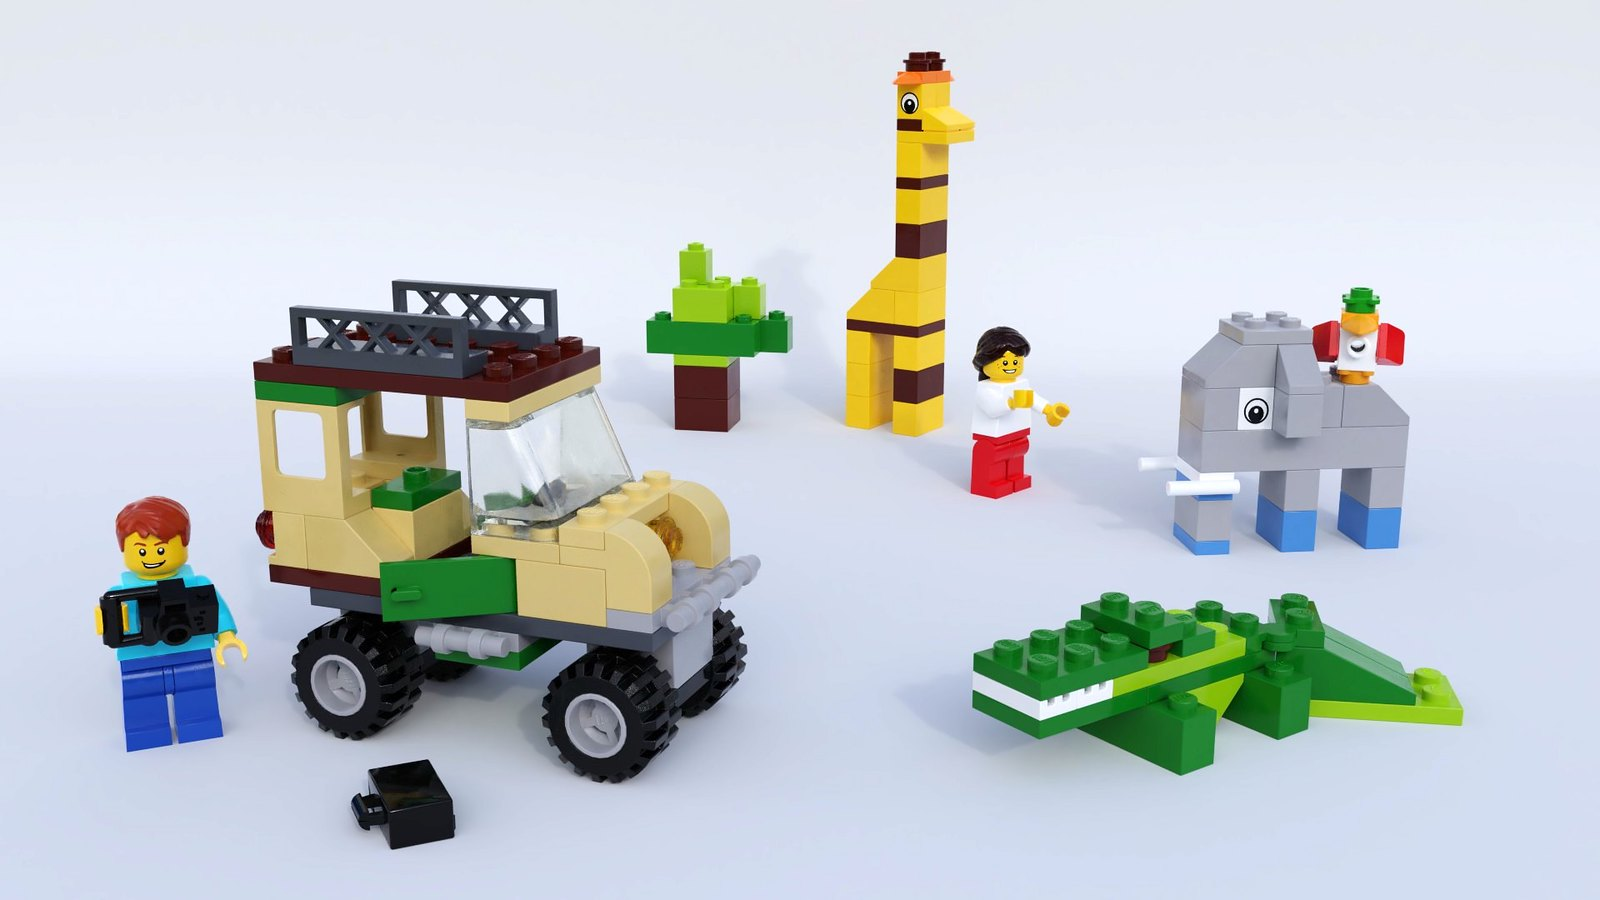 Time to Catch up on My Lego Renders